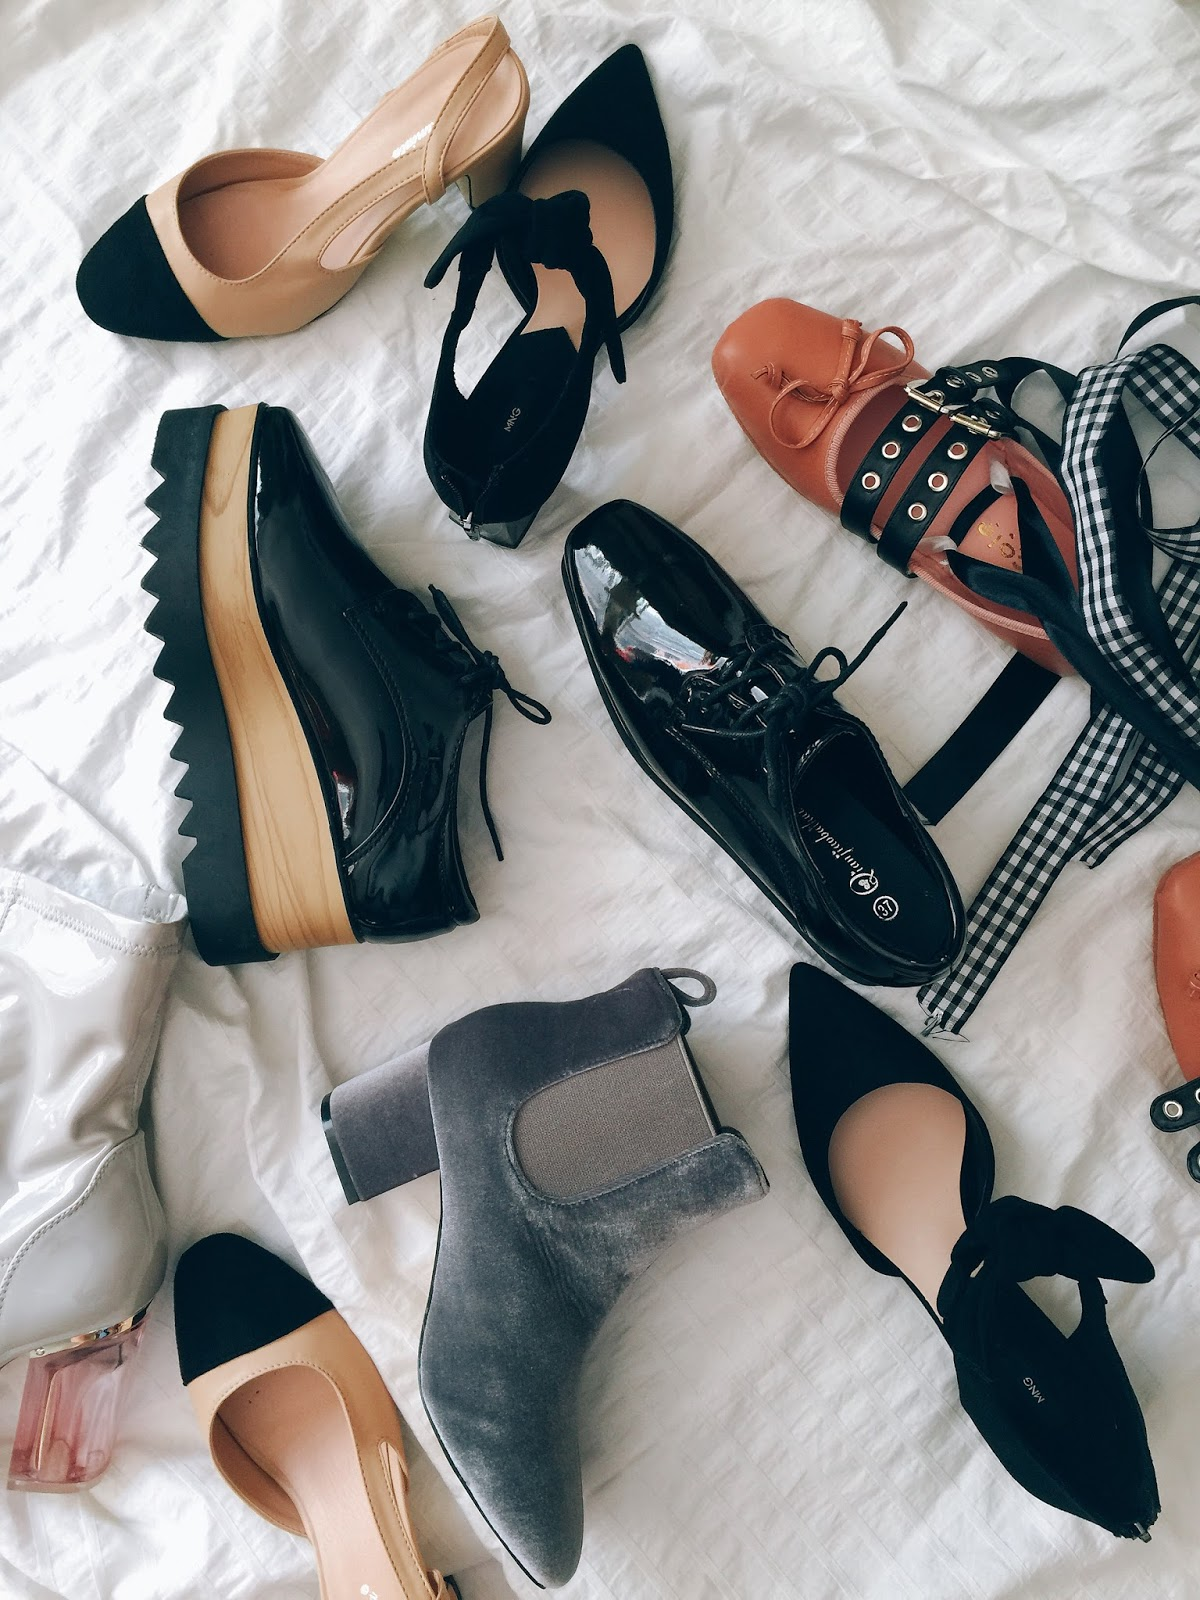 affordable fashion, ankle boots, big bows, fall shoe trends, fashion blogs, flats, lifestyle, platforms, portland fashion blogger, that's darling, velvet,